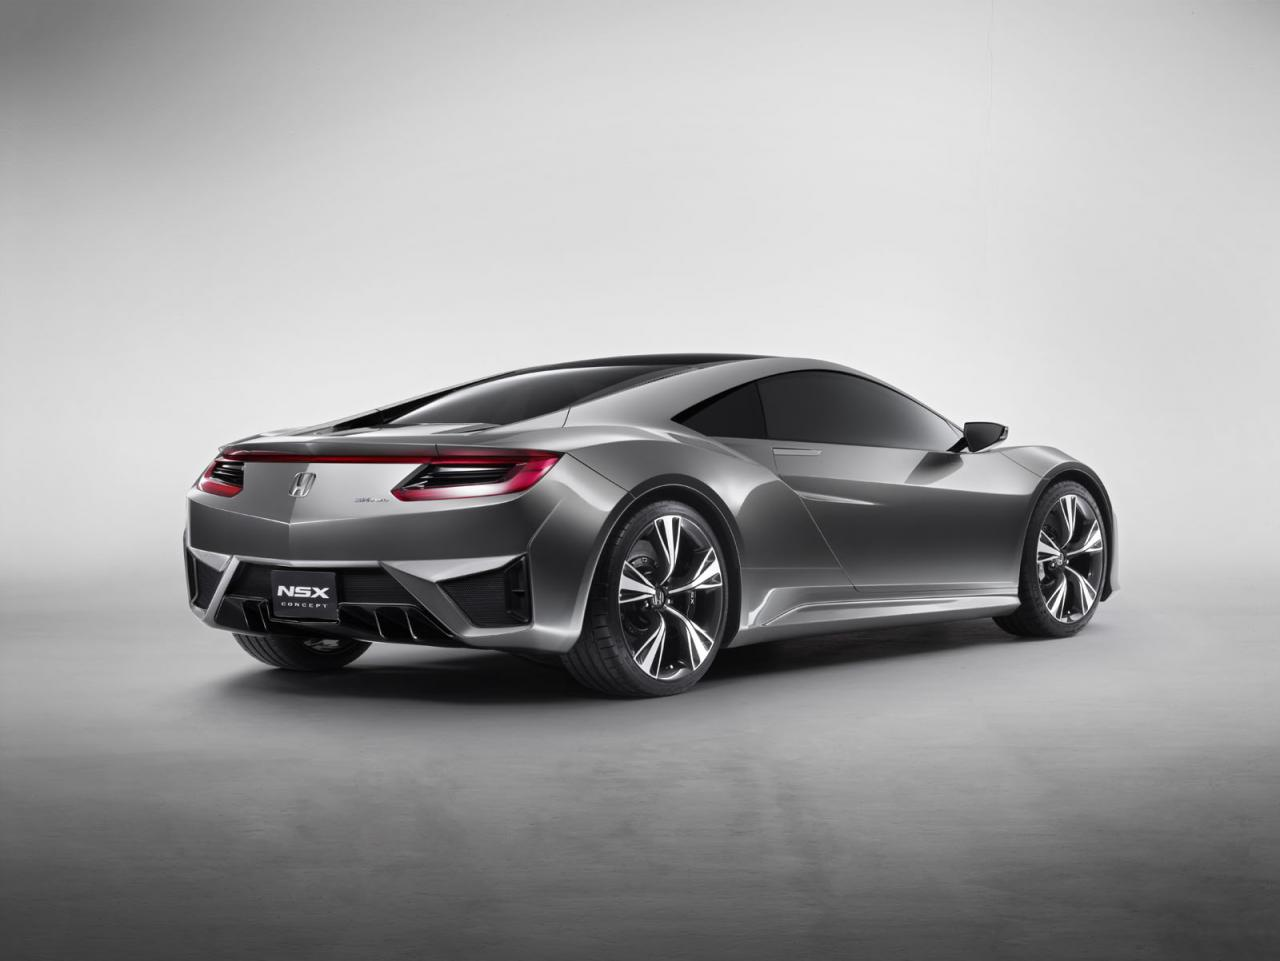 2012 Honda NSX Concept 2 Announcement for Earth Dreams engine by Honda